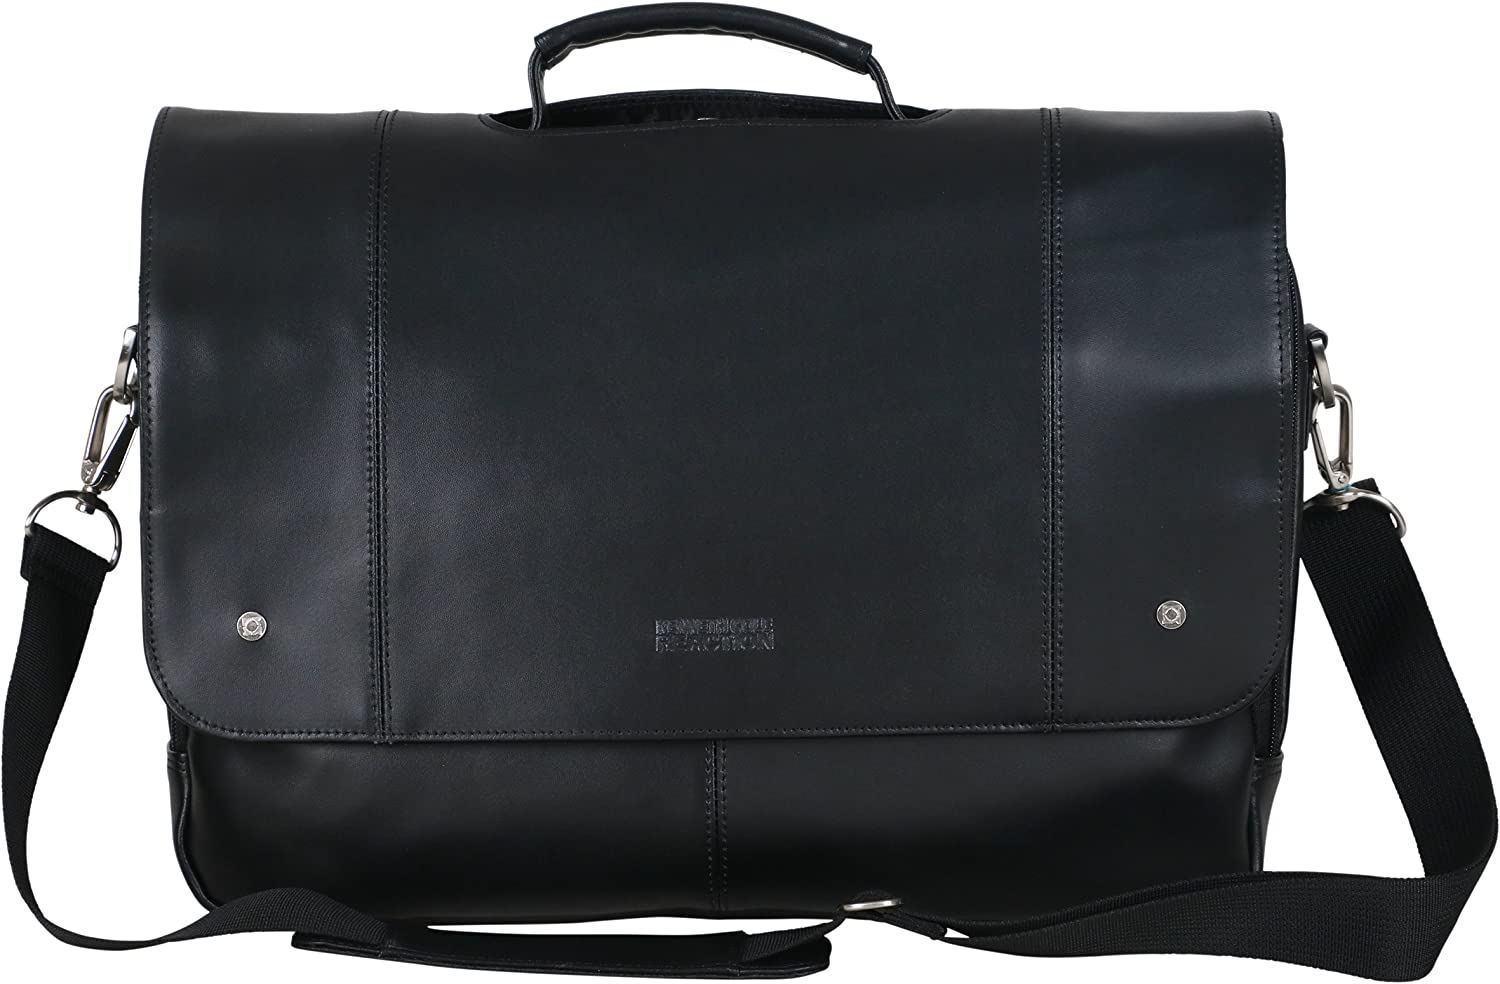 "Kenneth Cole Reaction Leather Flapover 16.0"" Computer Business Crossbody Portfolio Laptop Briefcase, Black, One Size"